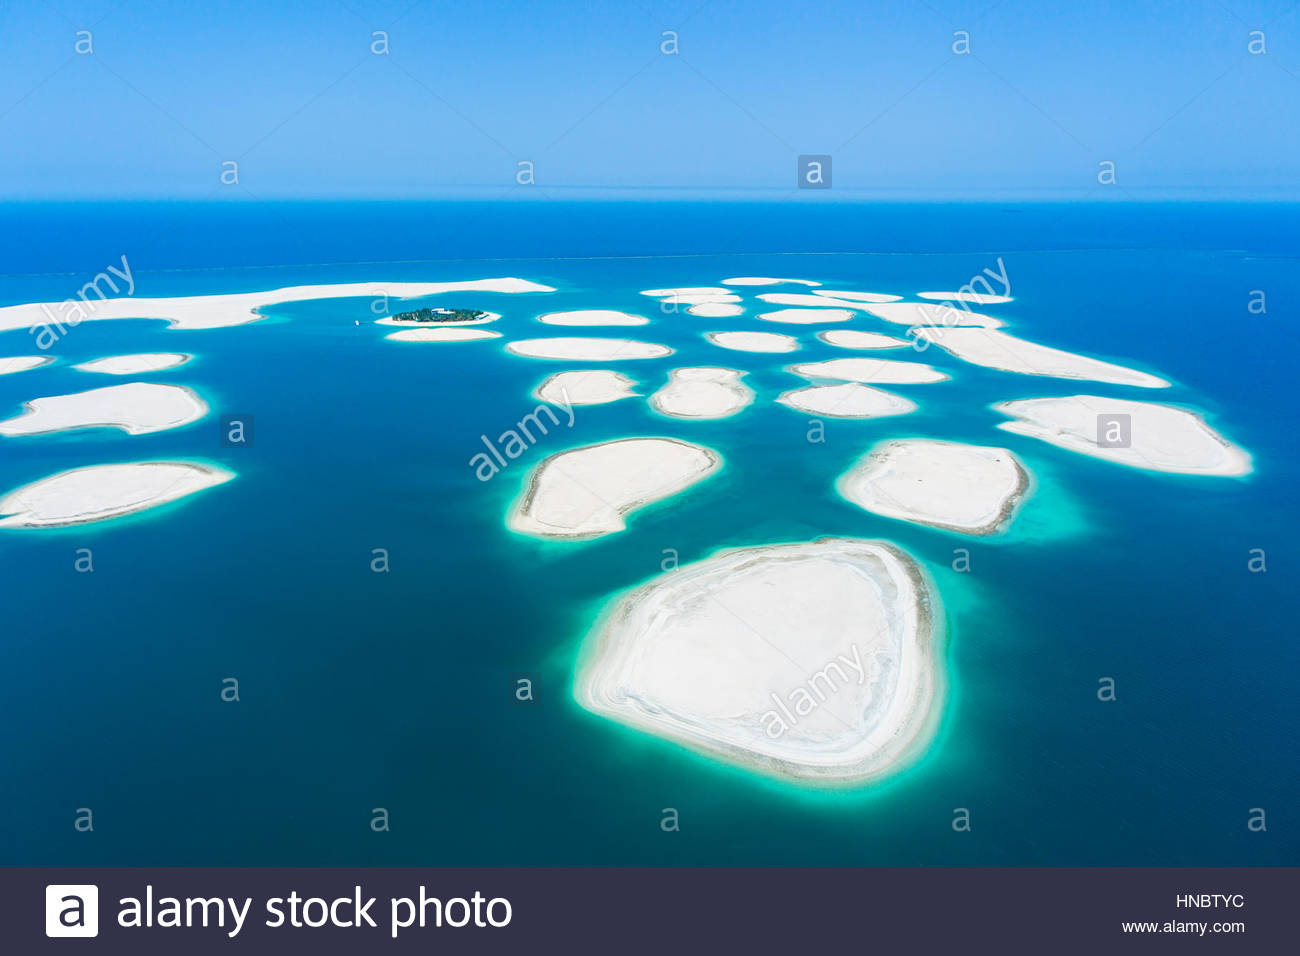 The World Or World Islands Are An Artificial Archipelago Of